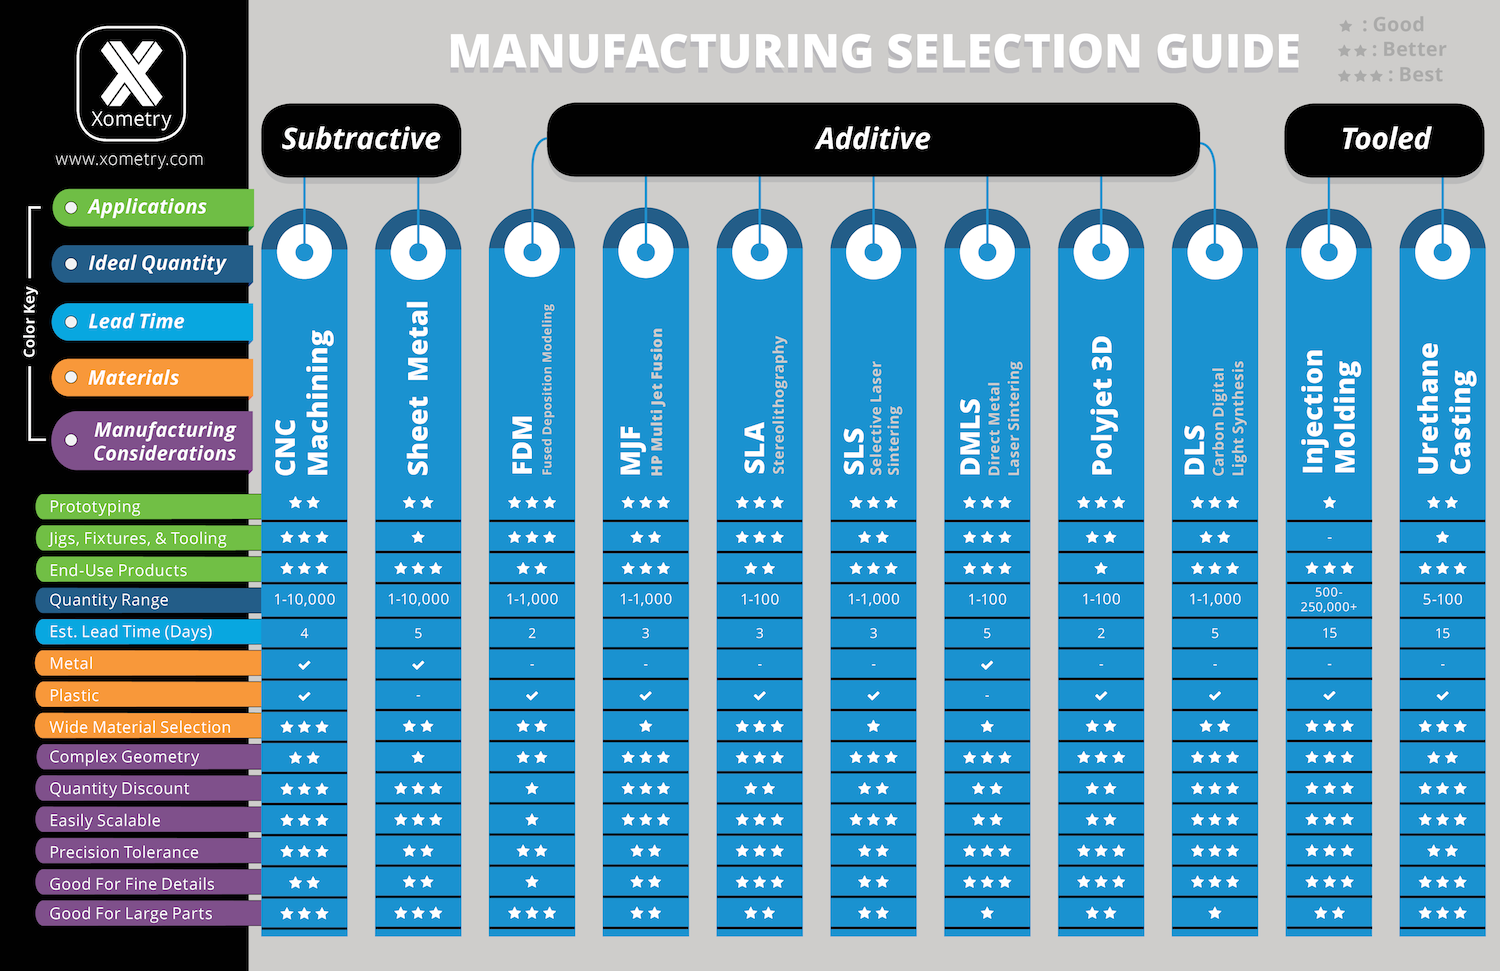 20191111-ultimatemanufacturingselectionguide-blog.png